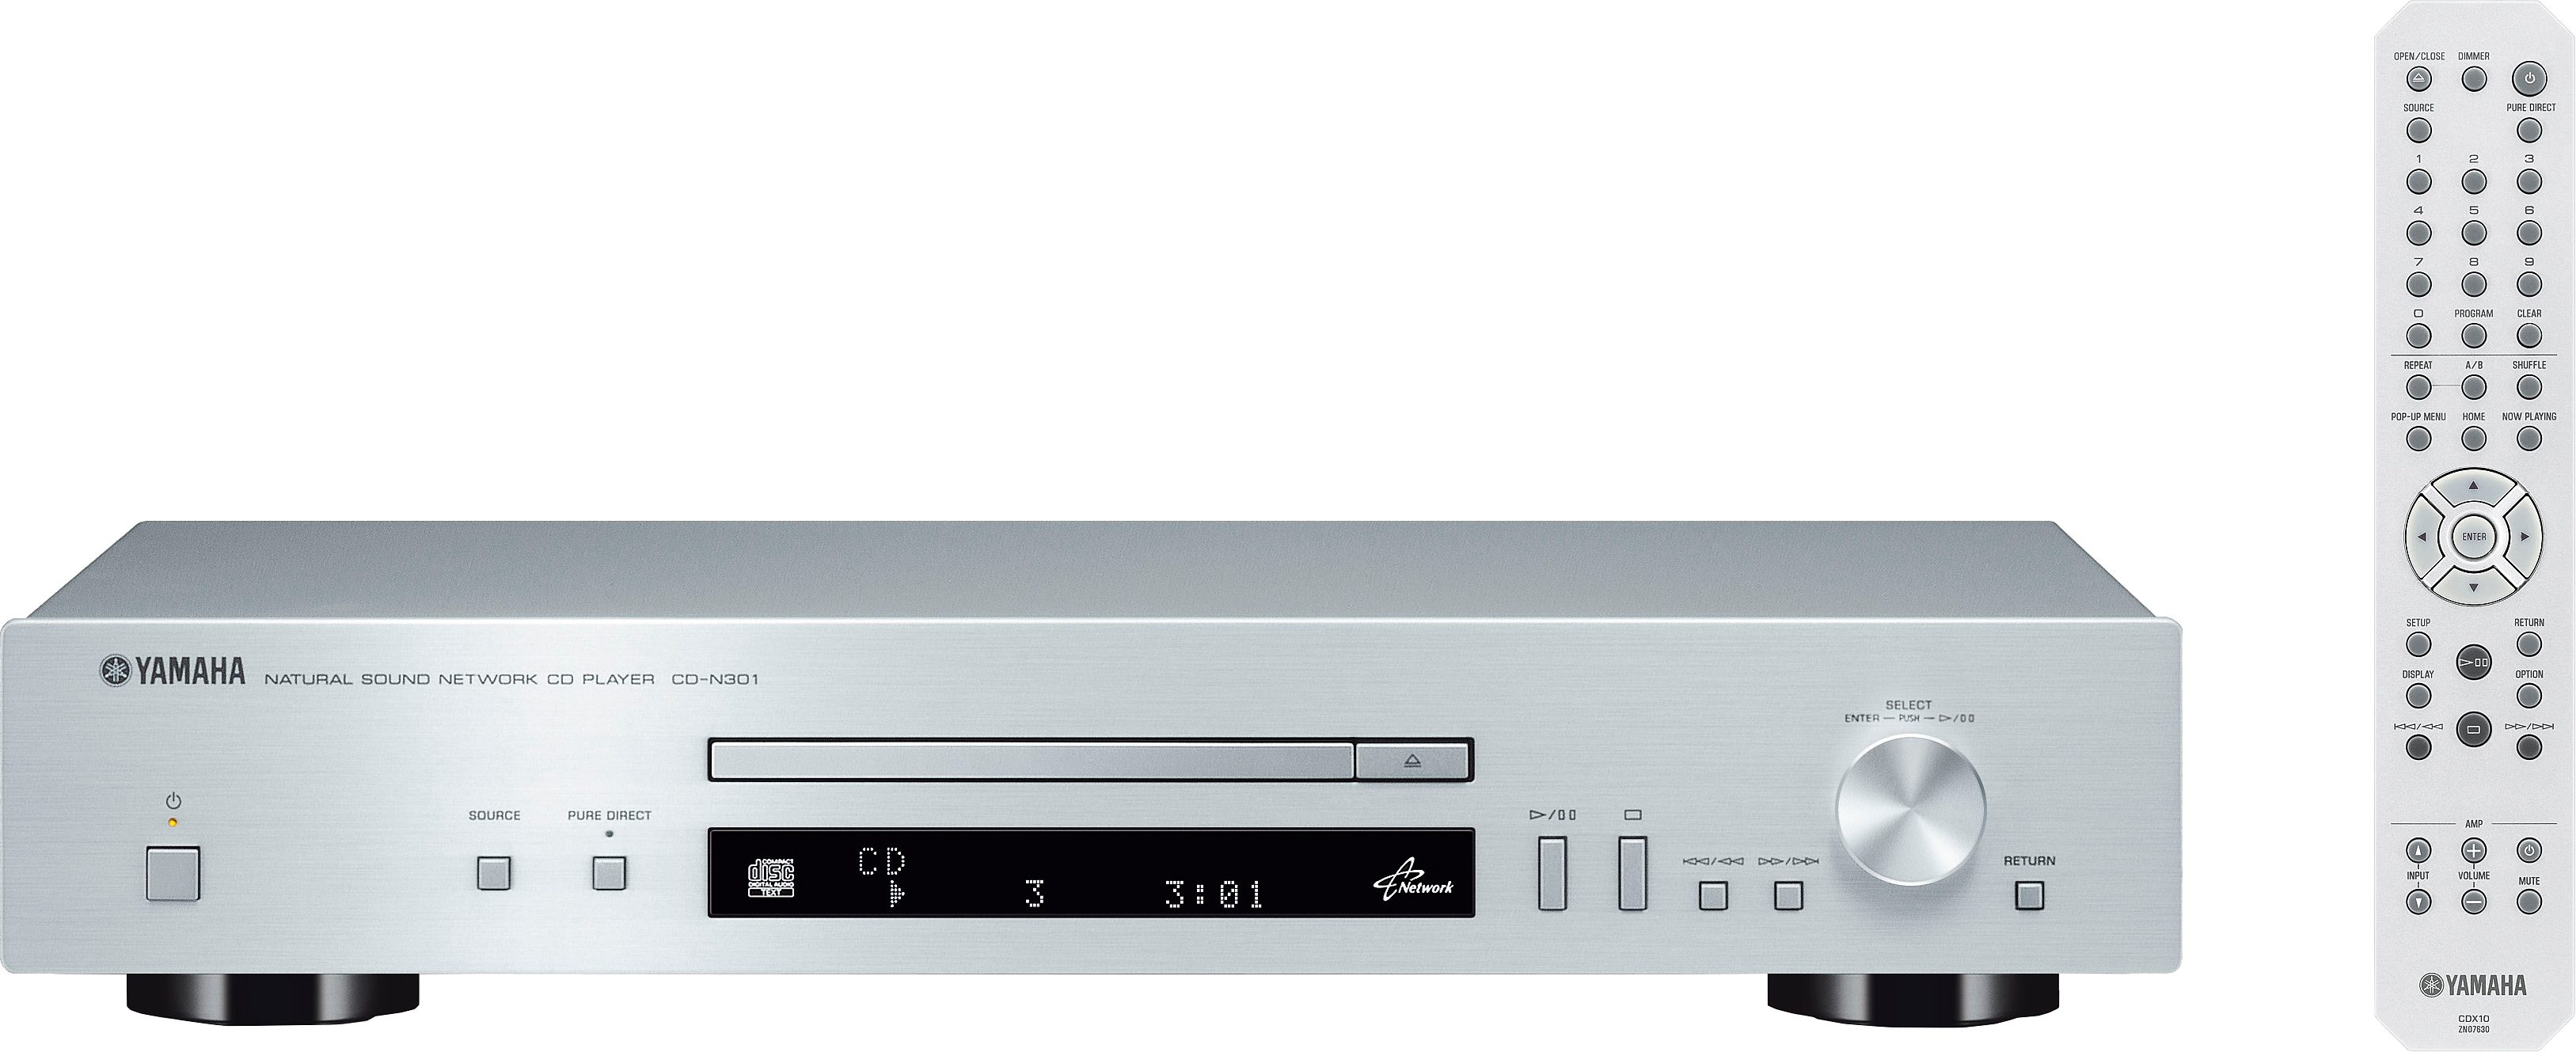 Yamaha CD-N301 CD-Player